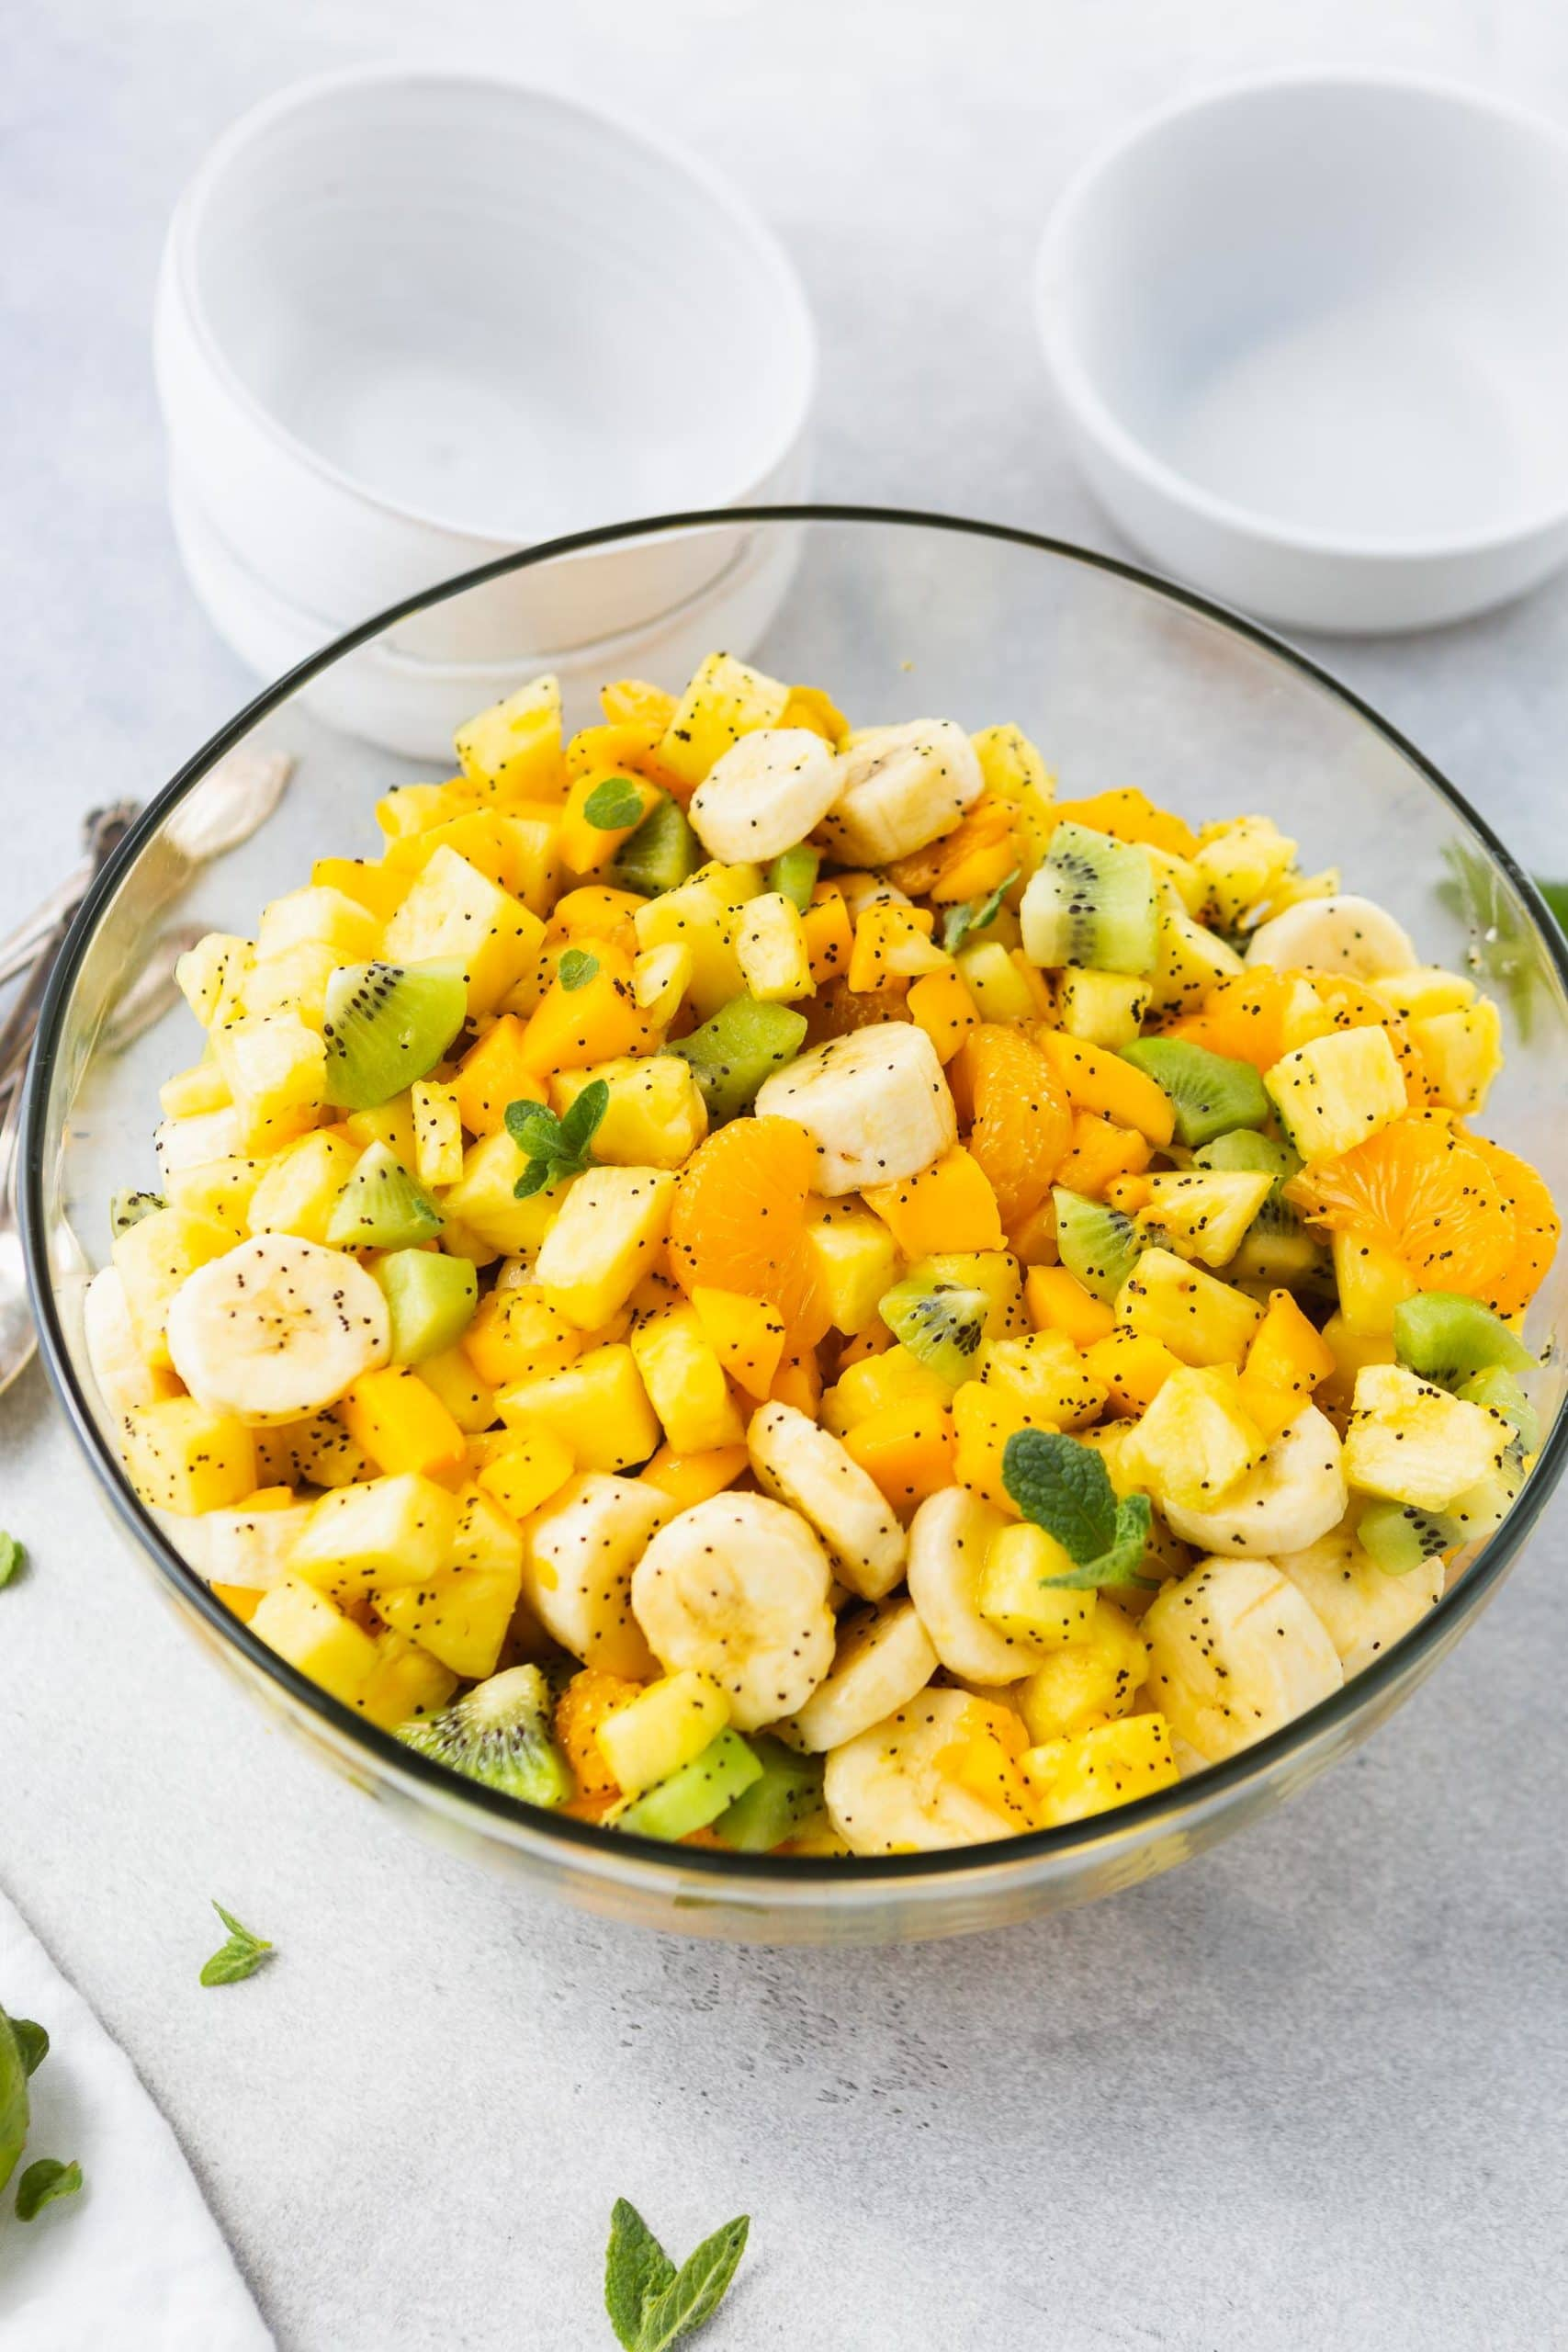 a photo of a glass bowl full of chopped tropical fruits like pineapple, mandarin oranges, bananas, and kiwi covered in a honey poppy seed dressing.